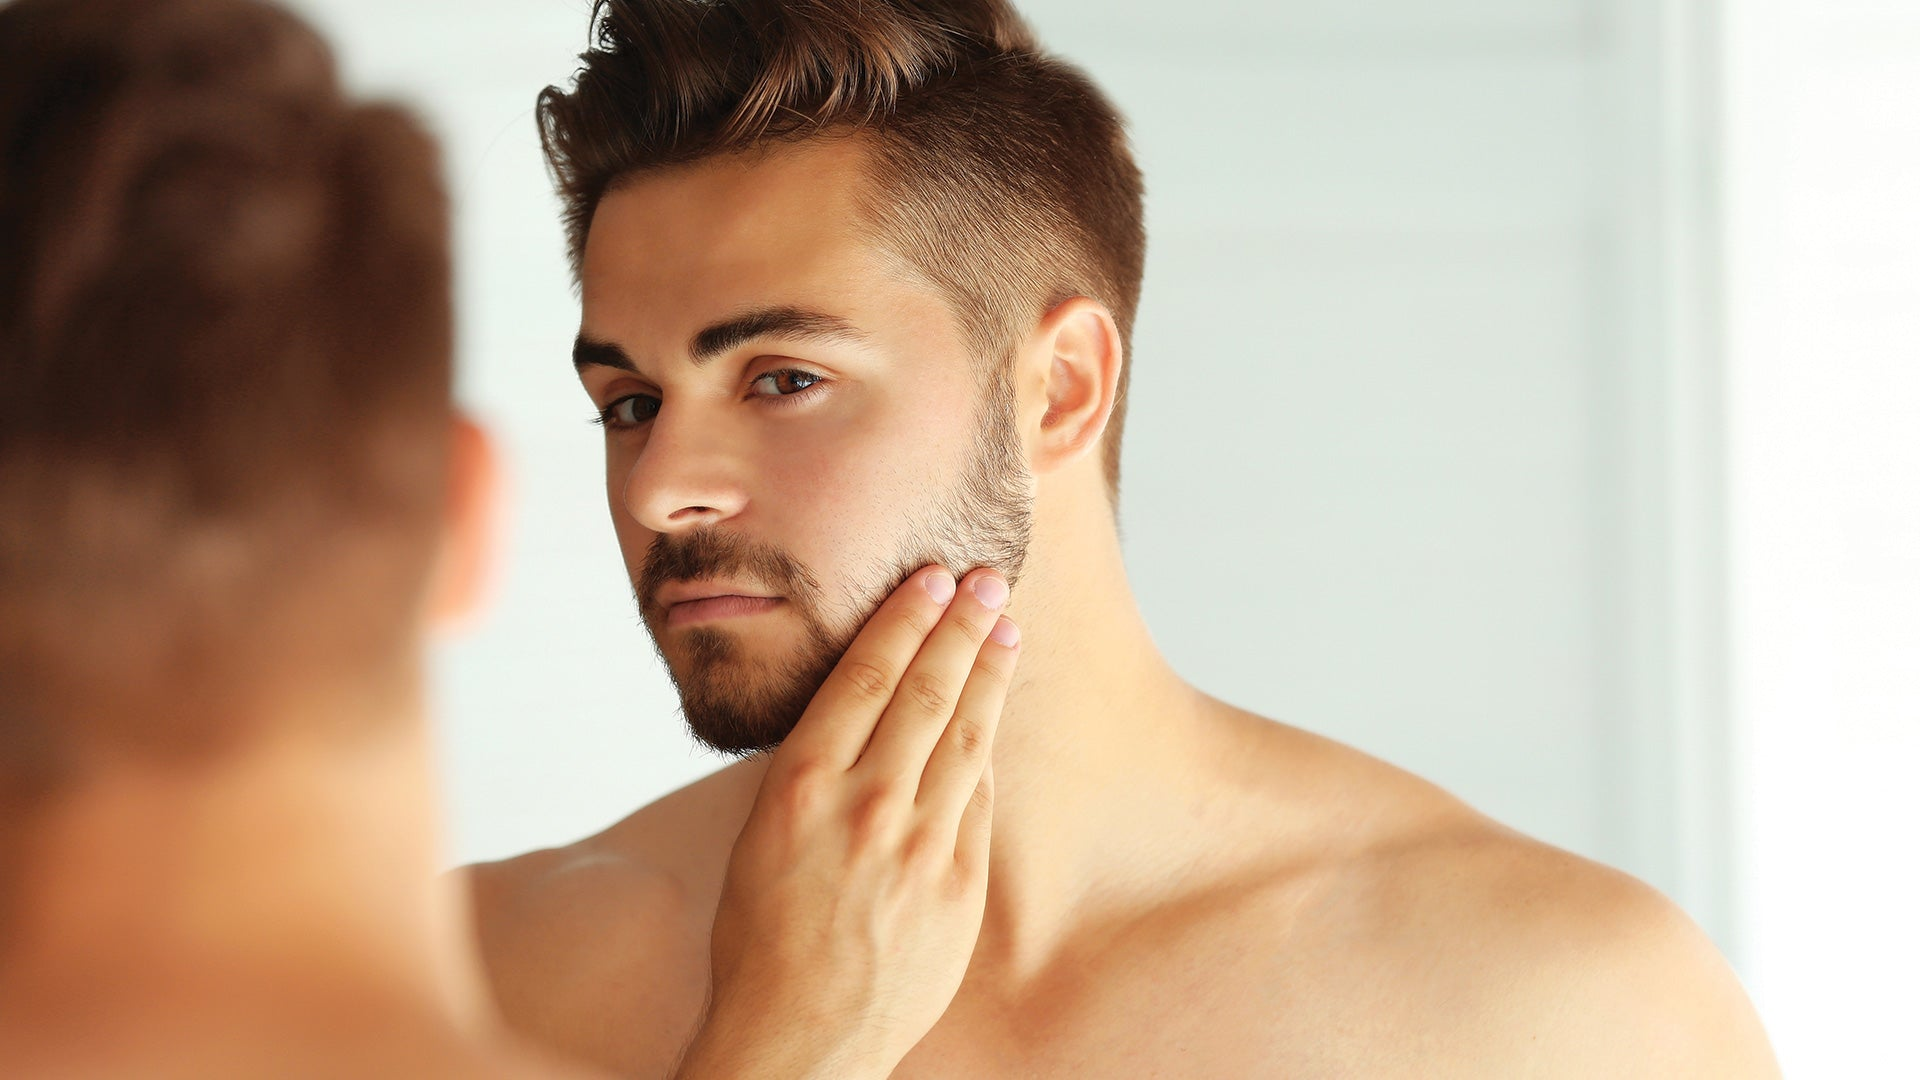 Moisturize your beard - Beard Grooming Tips